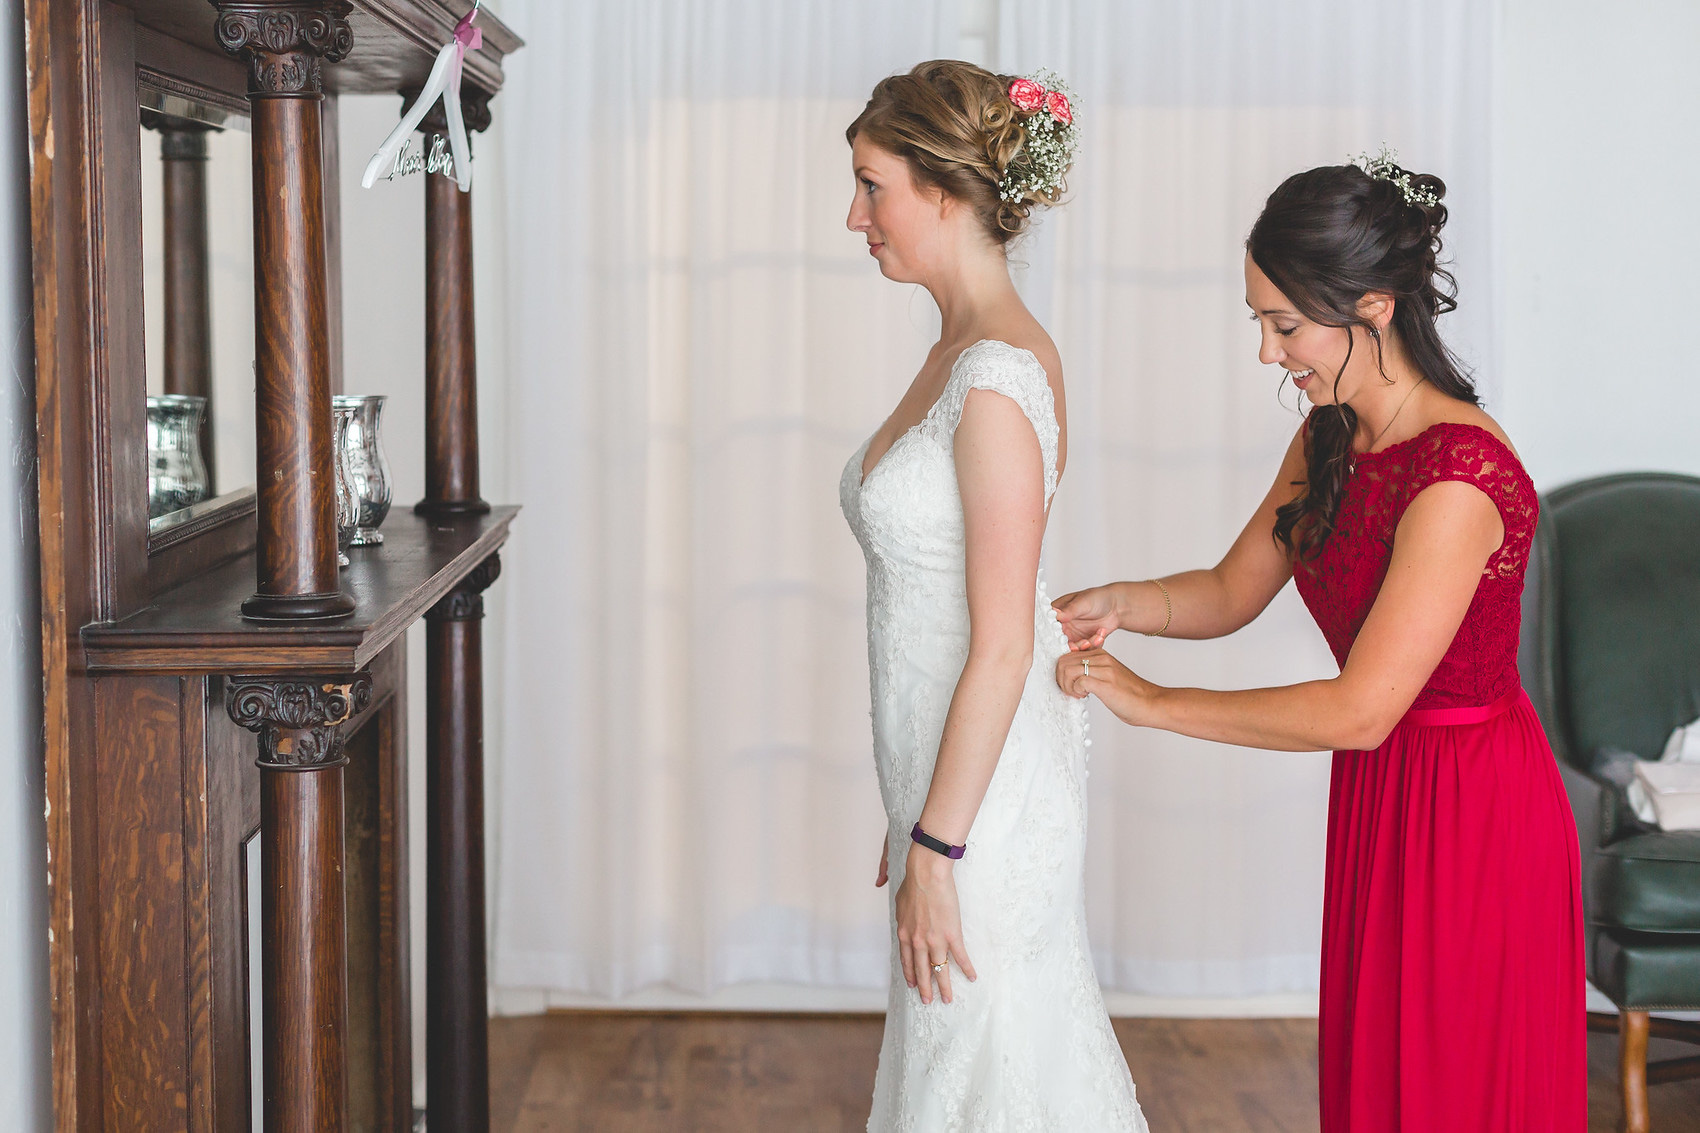 Adam-Szrmack-Bowing-the-white-room-st-augustine-wedding-photographer-10.jpg